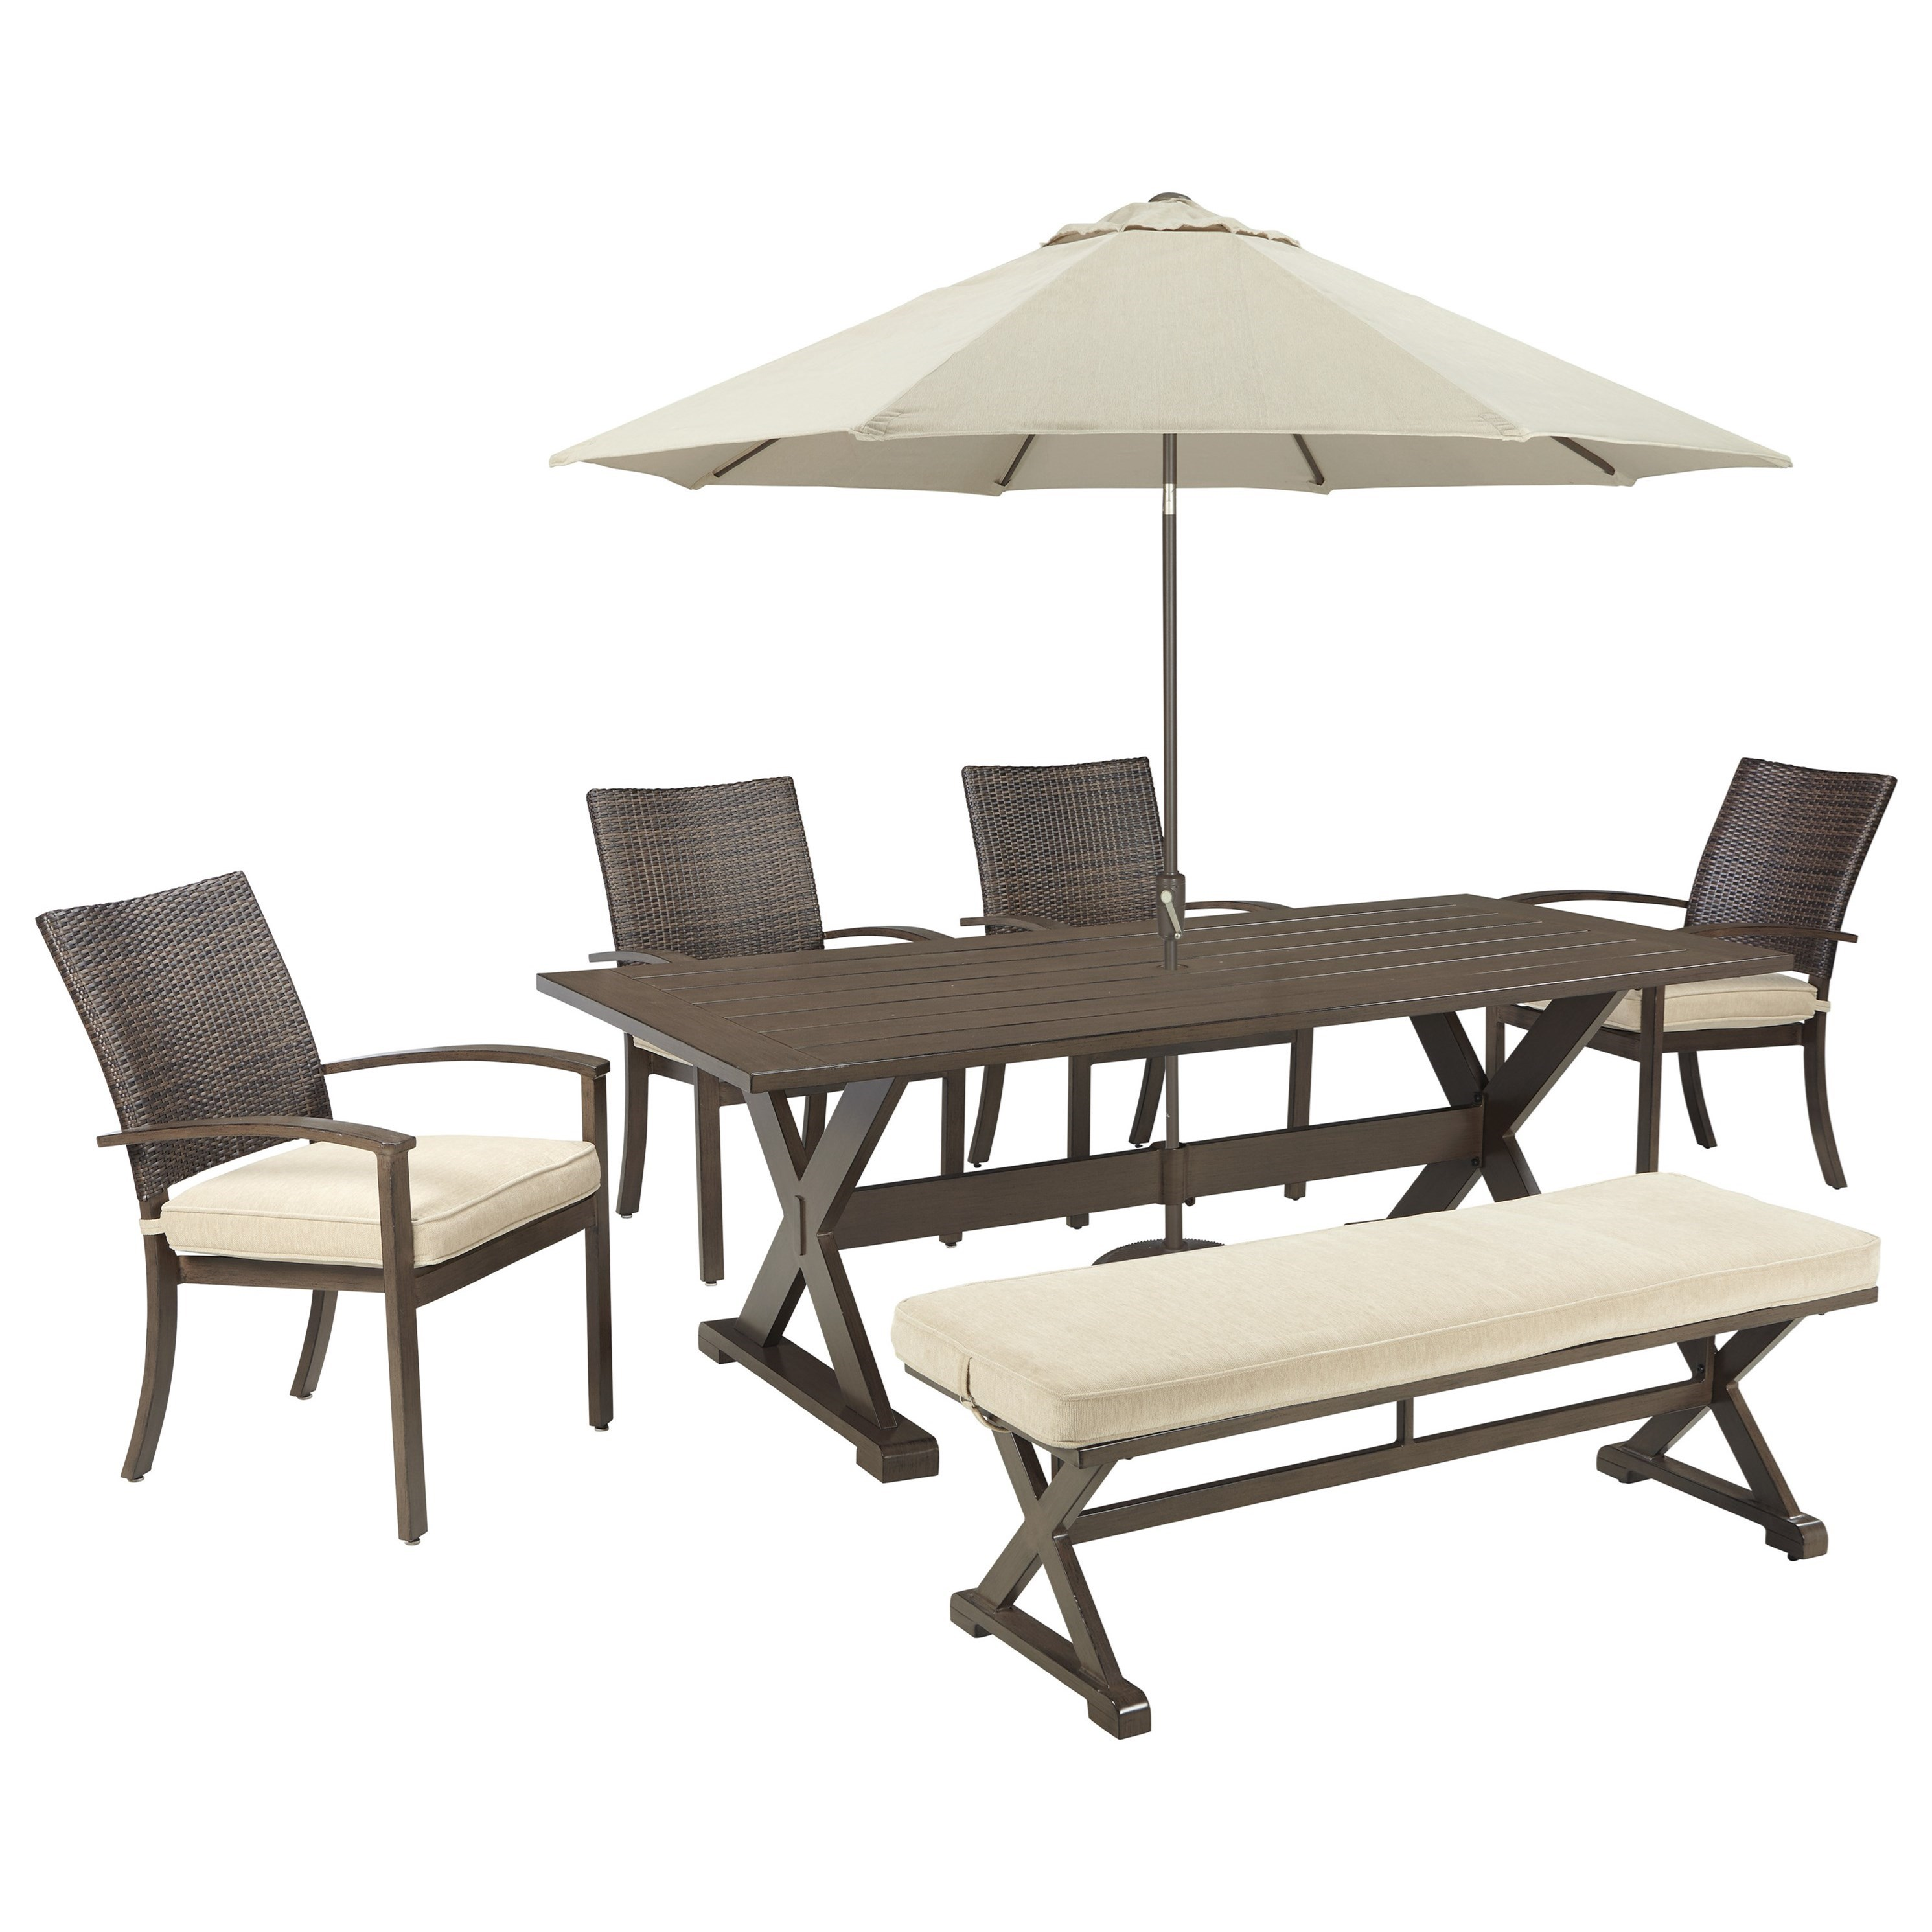 Outdoor dining table with umbrella - Signature Design By Ashley Moresdale Outdoor Dining Set With Bench Umbrella Item Number